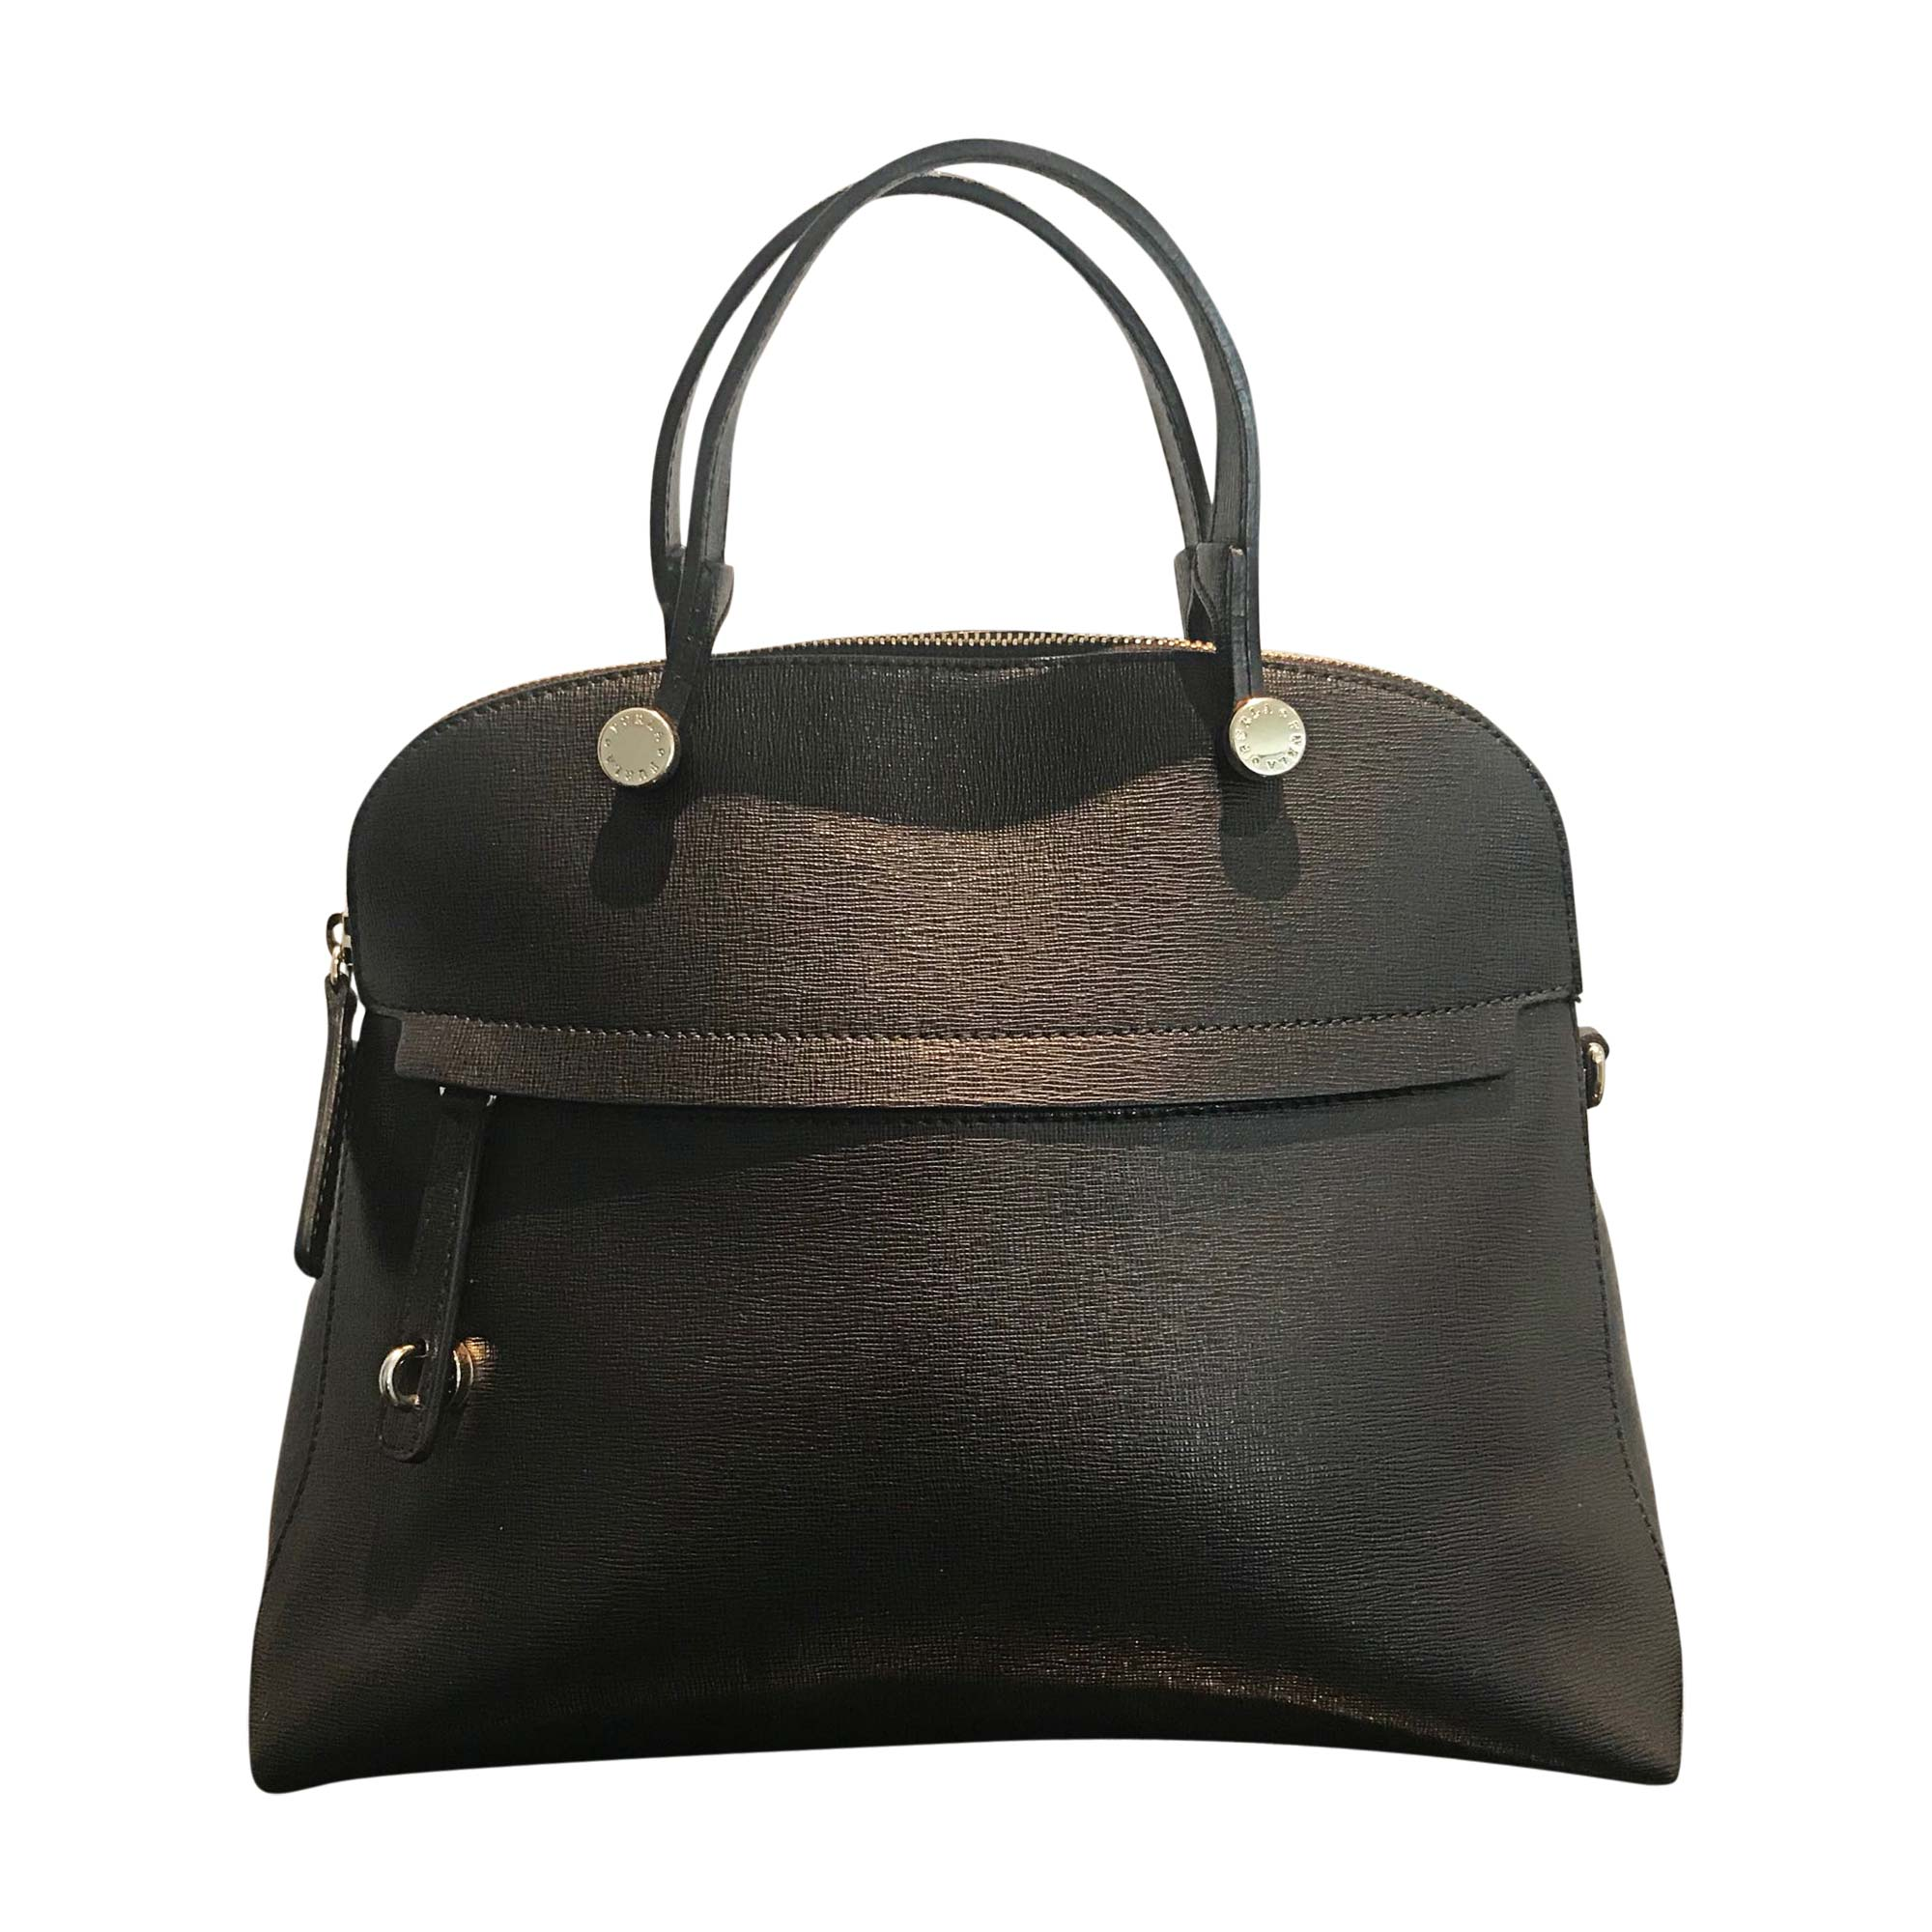 Leather Handbag FURLA Black